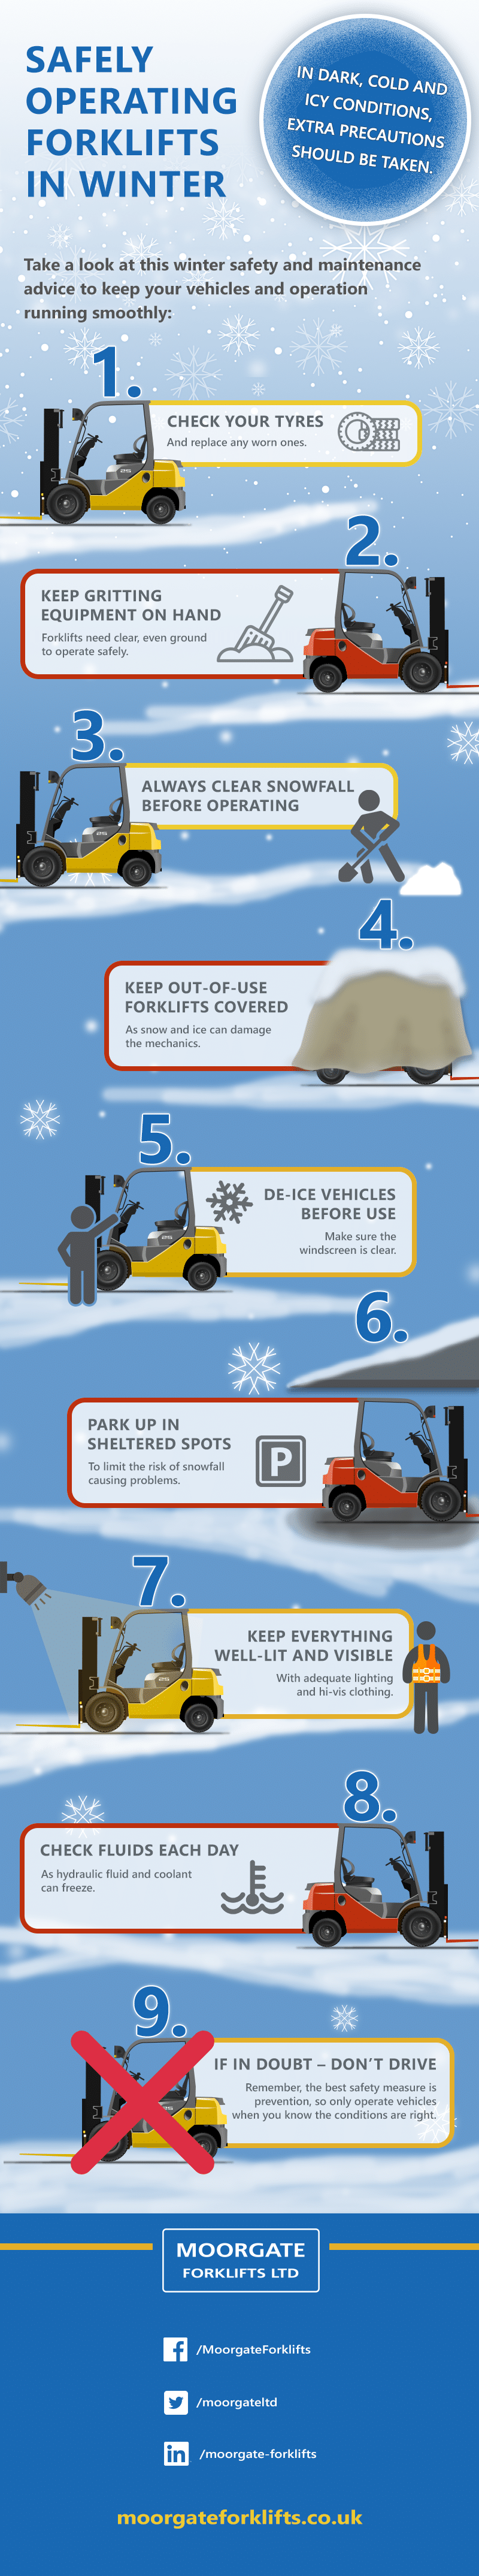 Moorgate-Winter-forklift-safety-infographic